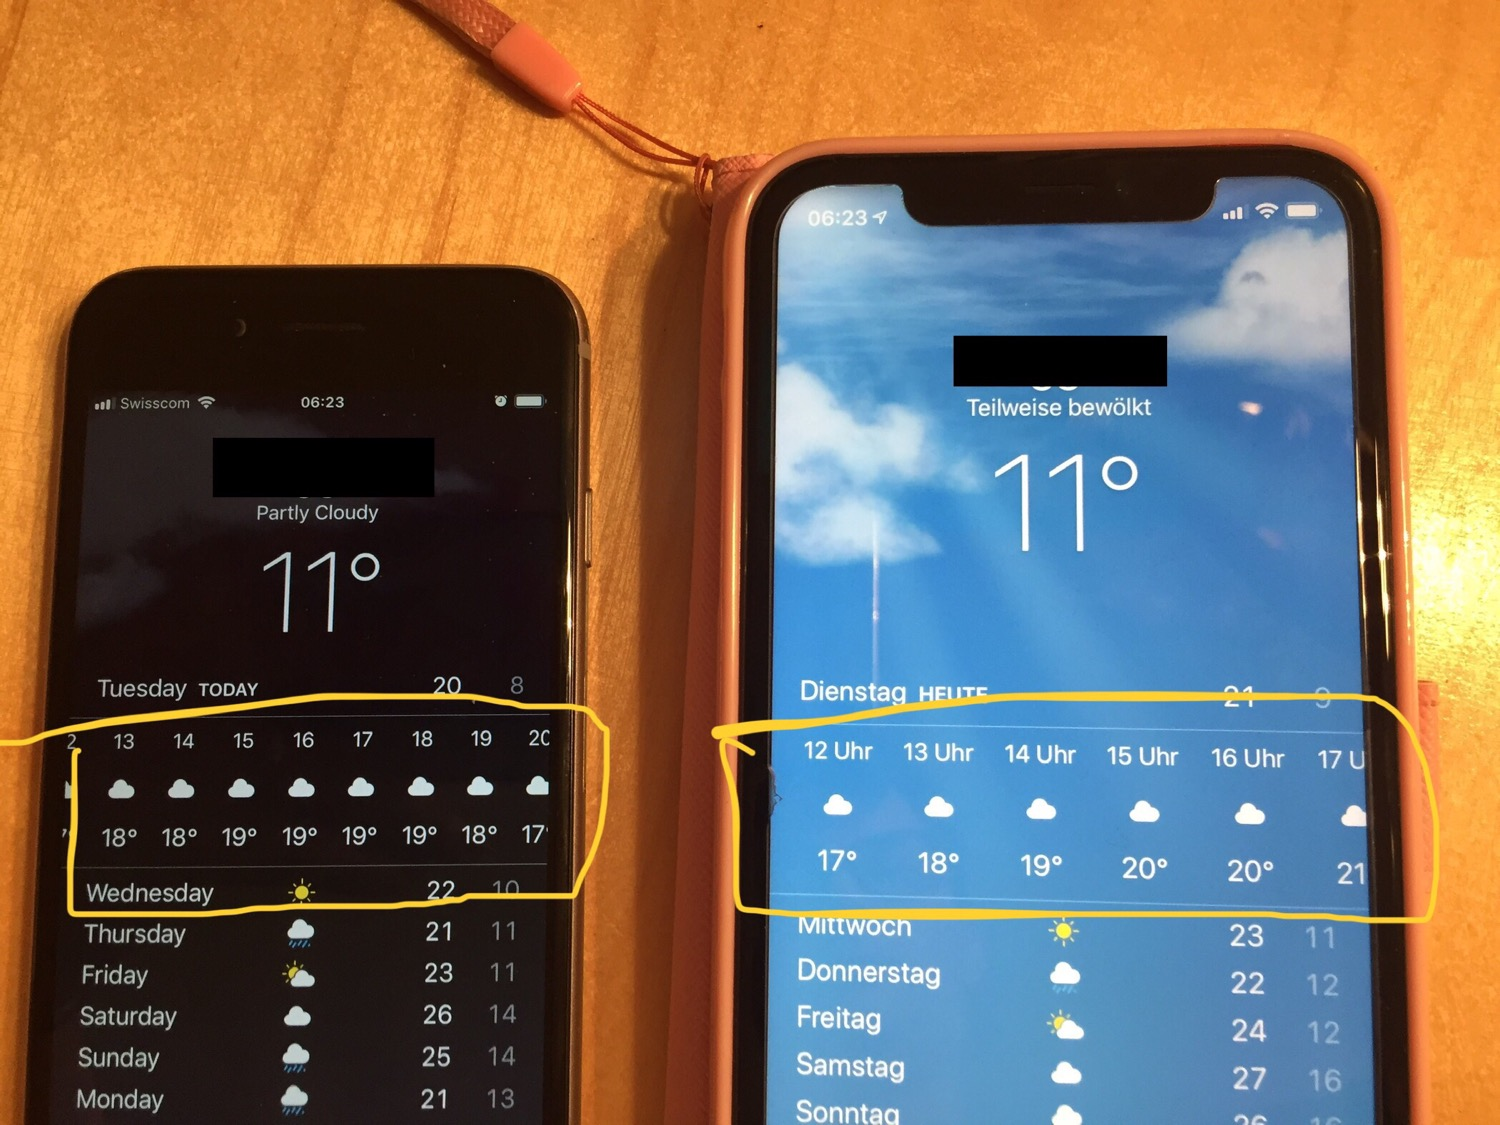 Two iPhones with the weather app set to the same location - showing different temperatures for the day.